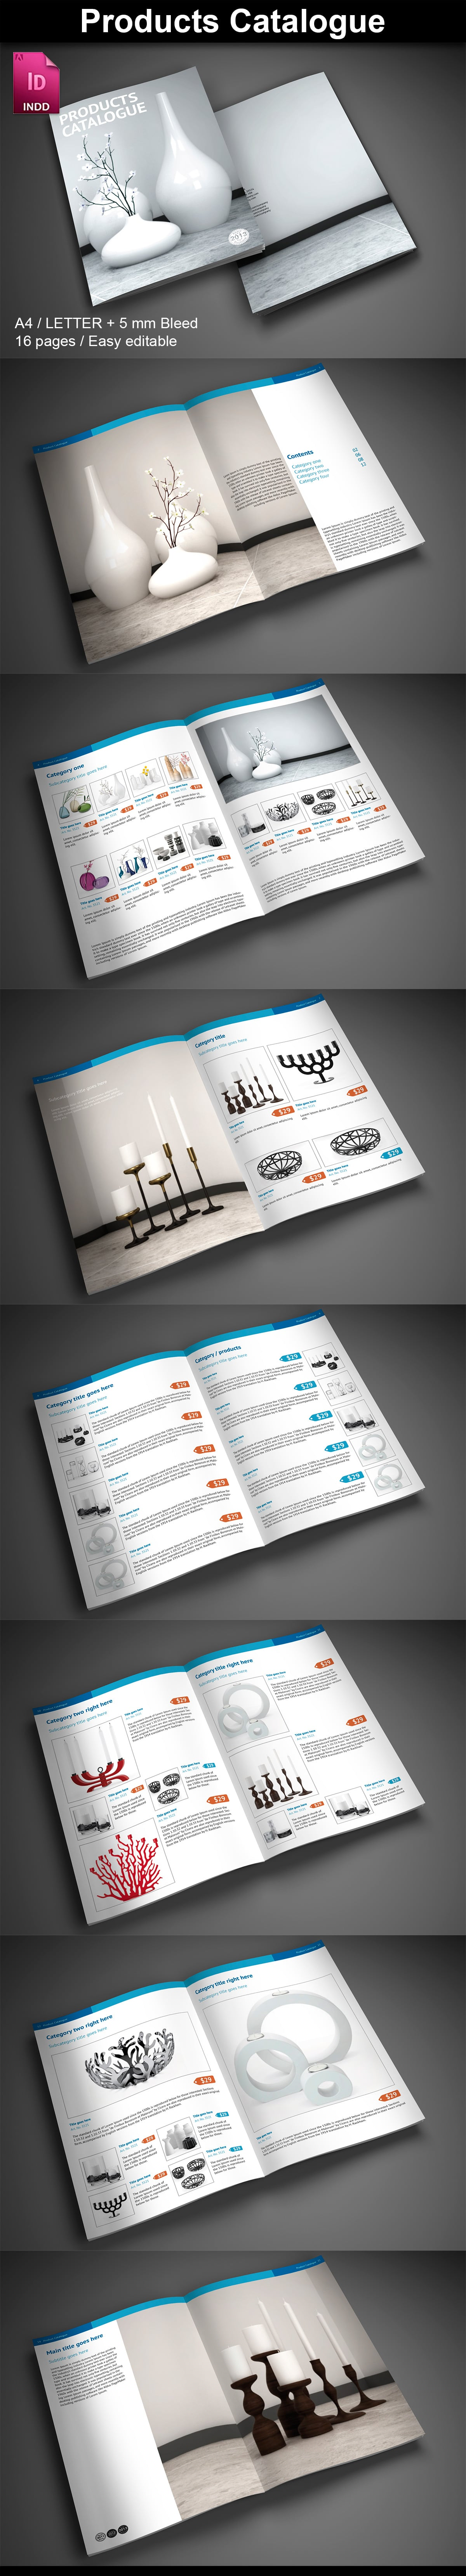 15  InDesign Product Catalogs - just $19 - 03 Products3 ImagePreview